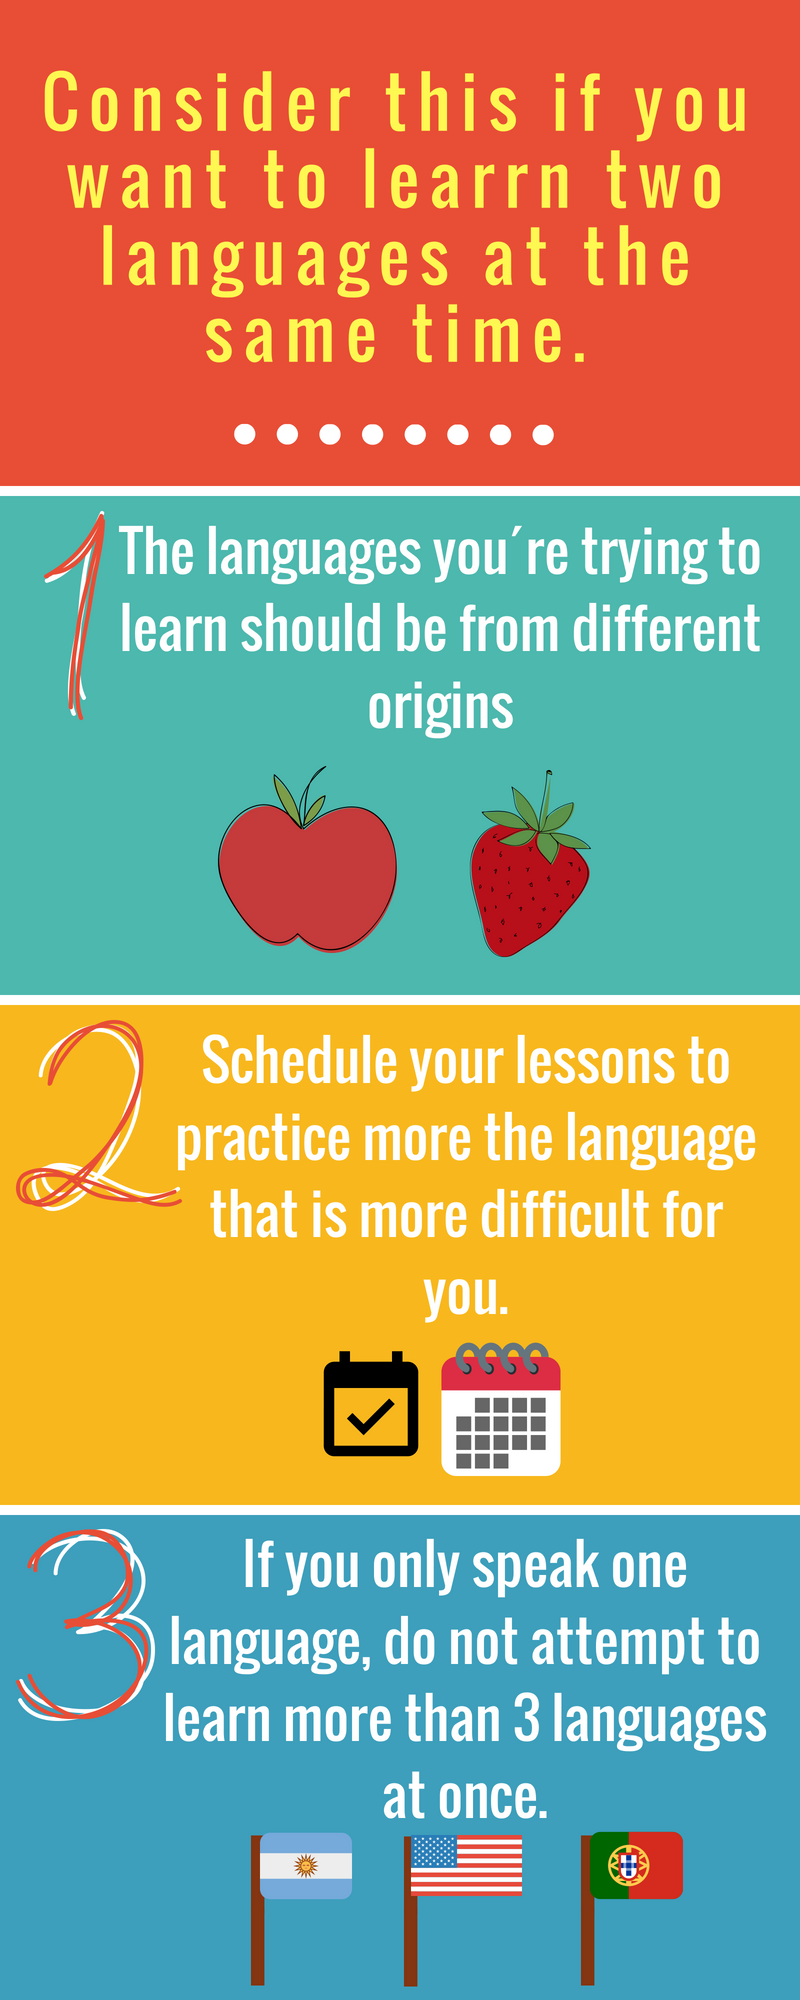 Learn_two_languages